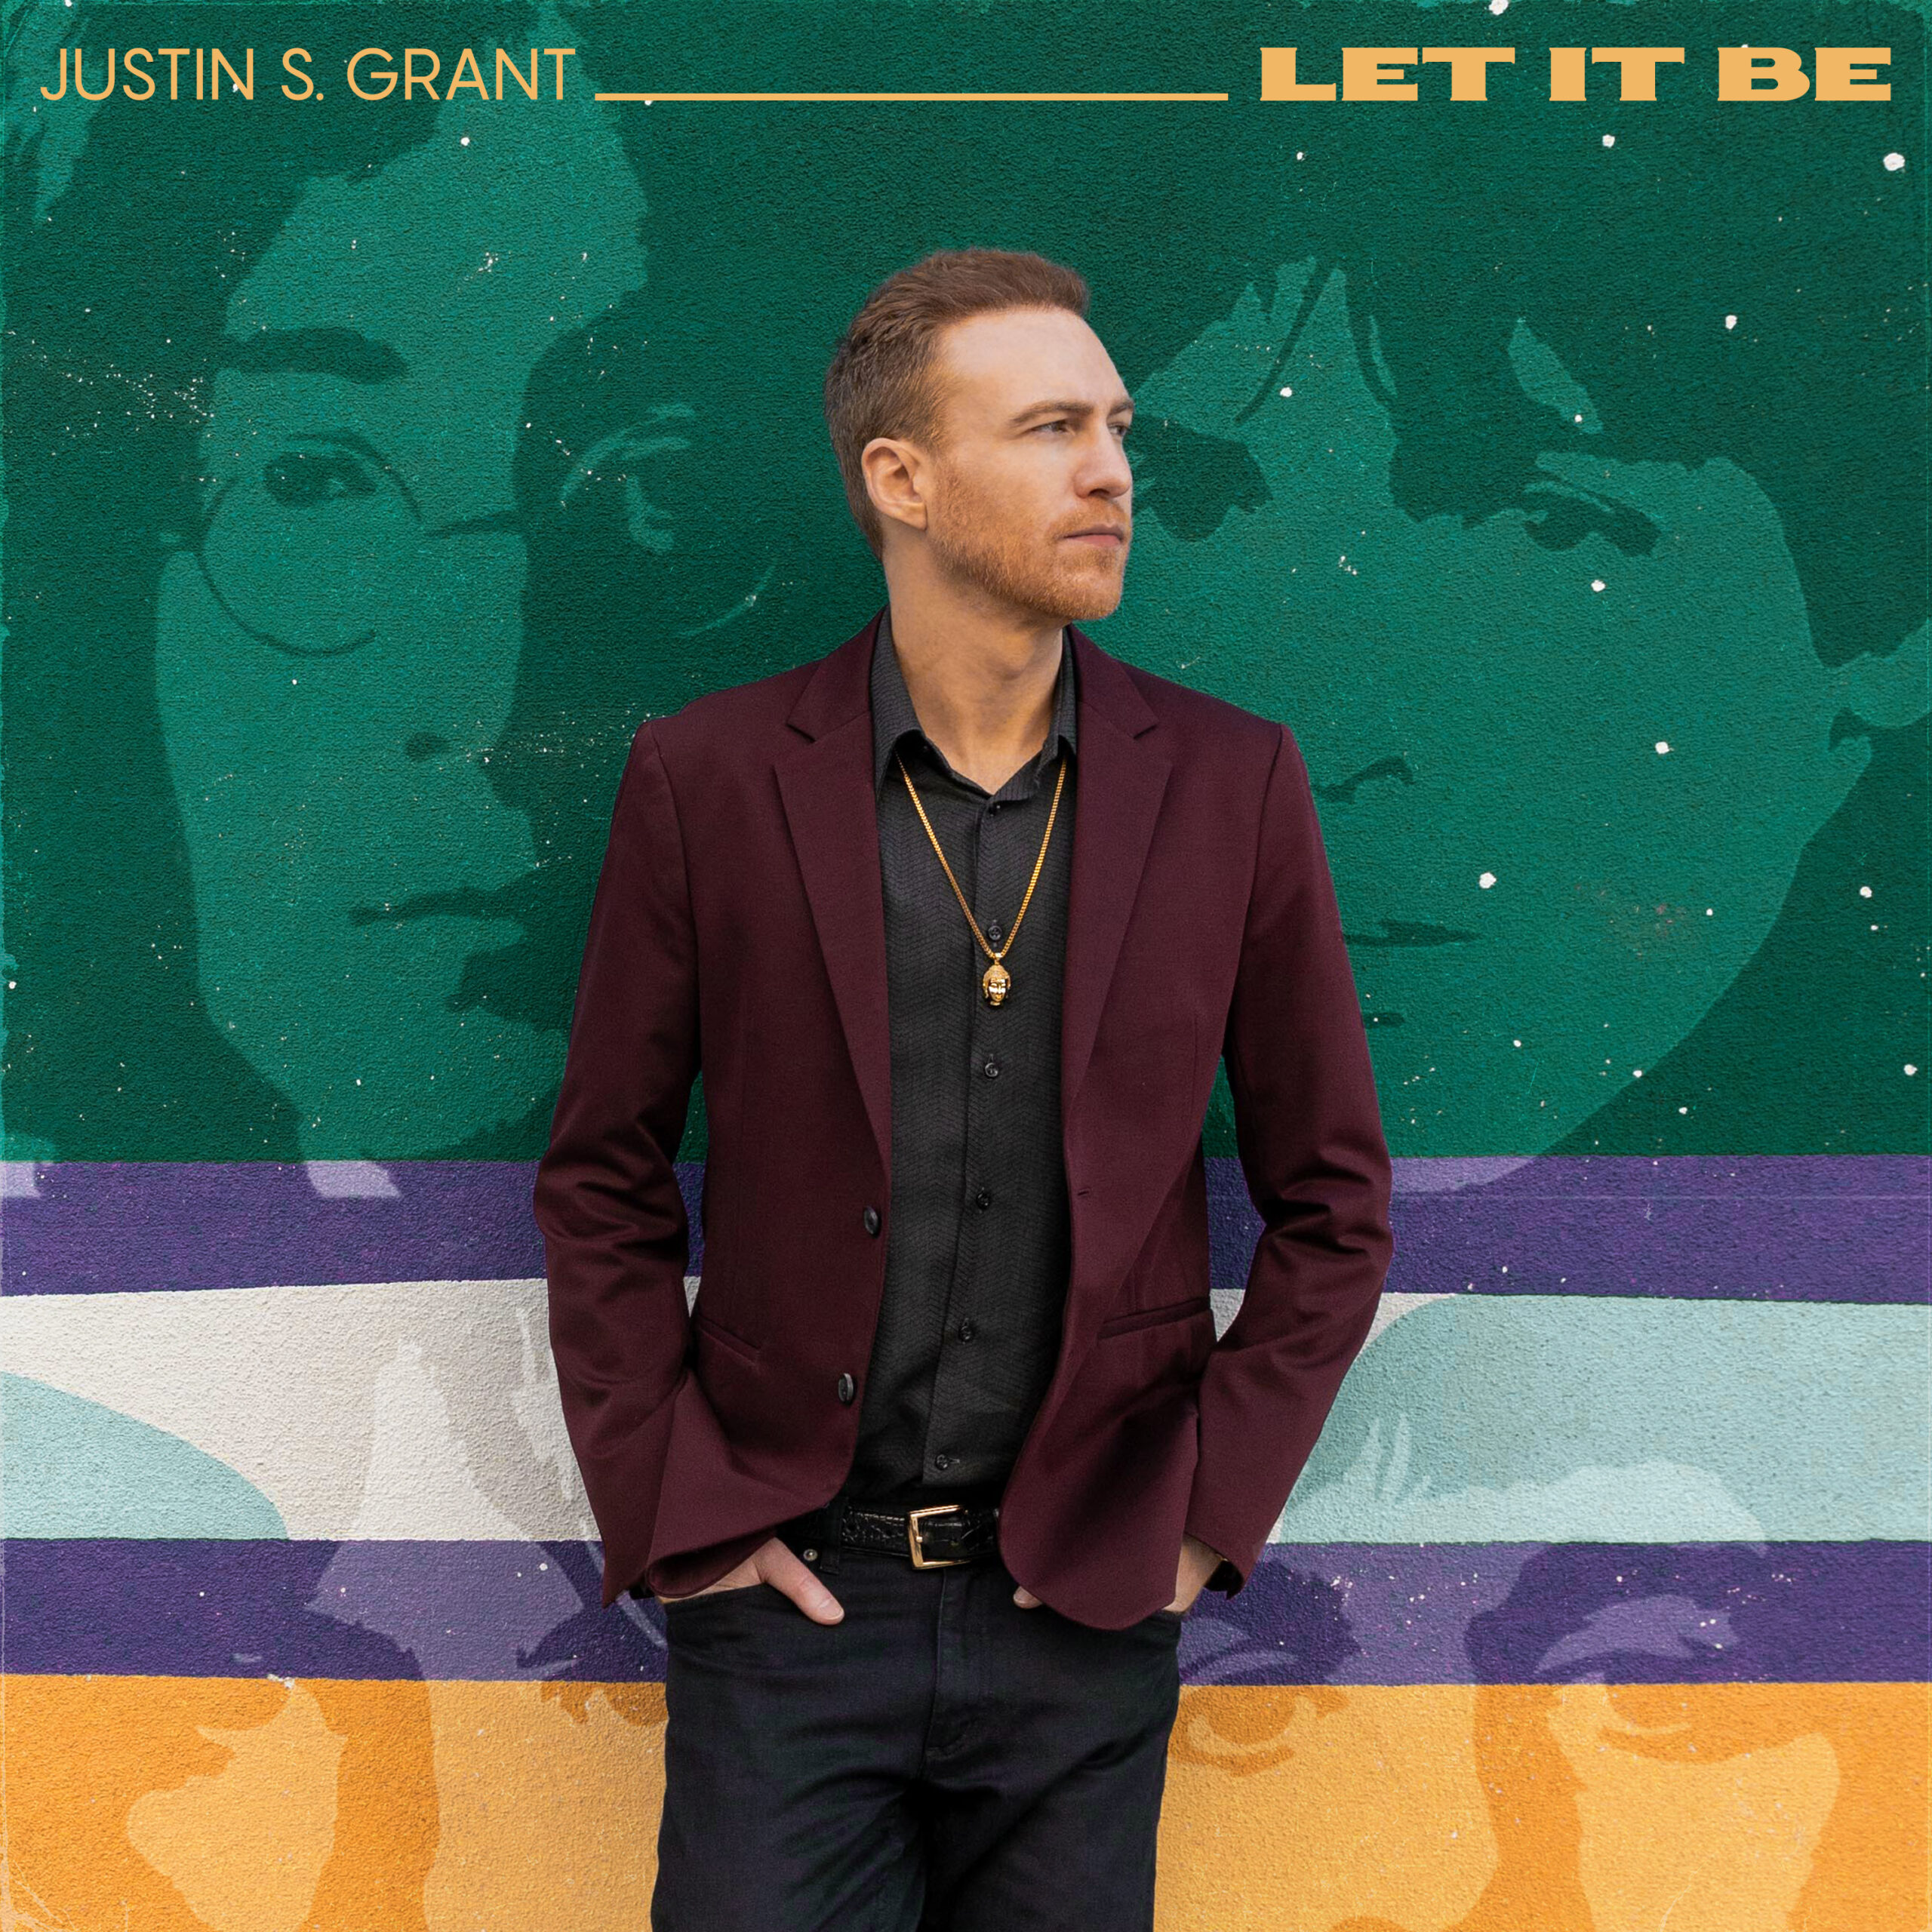 """If You Love The Beatles, You Must Check Out Justin S. Grant Version Of """"Let It Be"""" (Official Lyric Video)"""